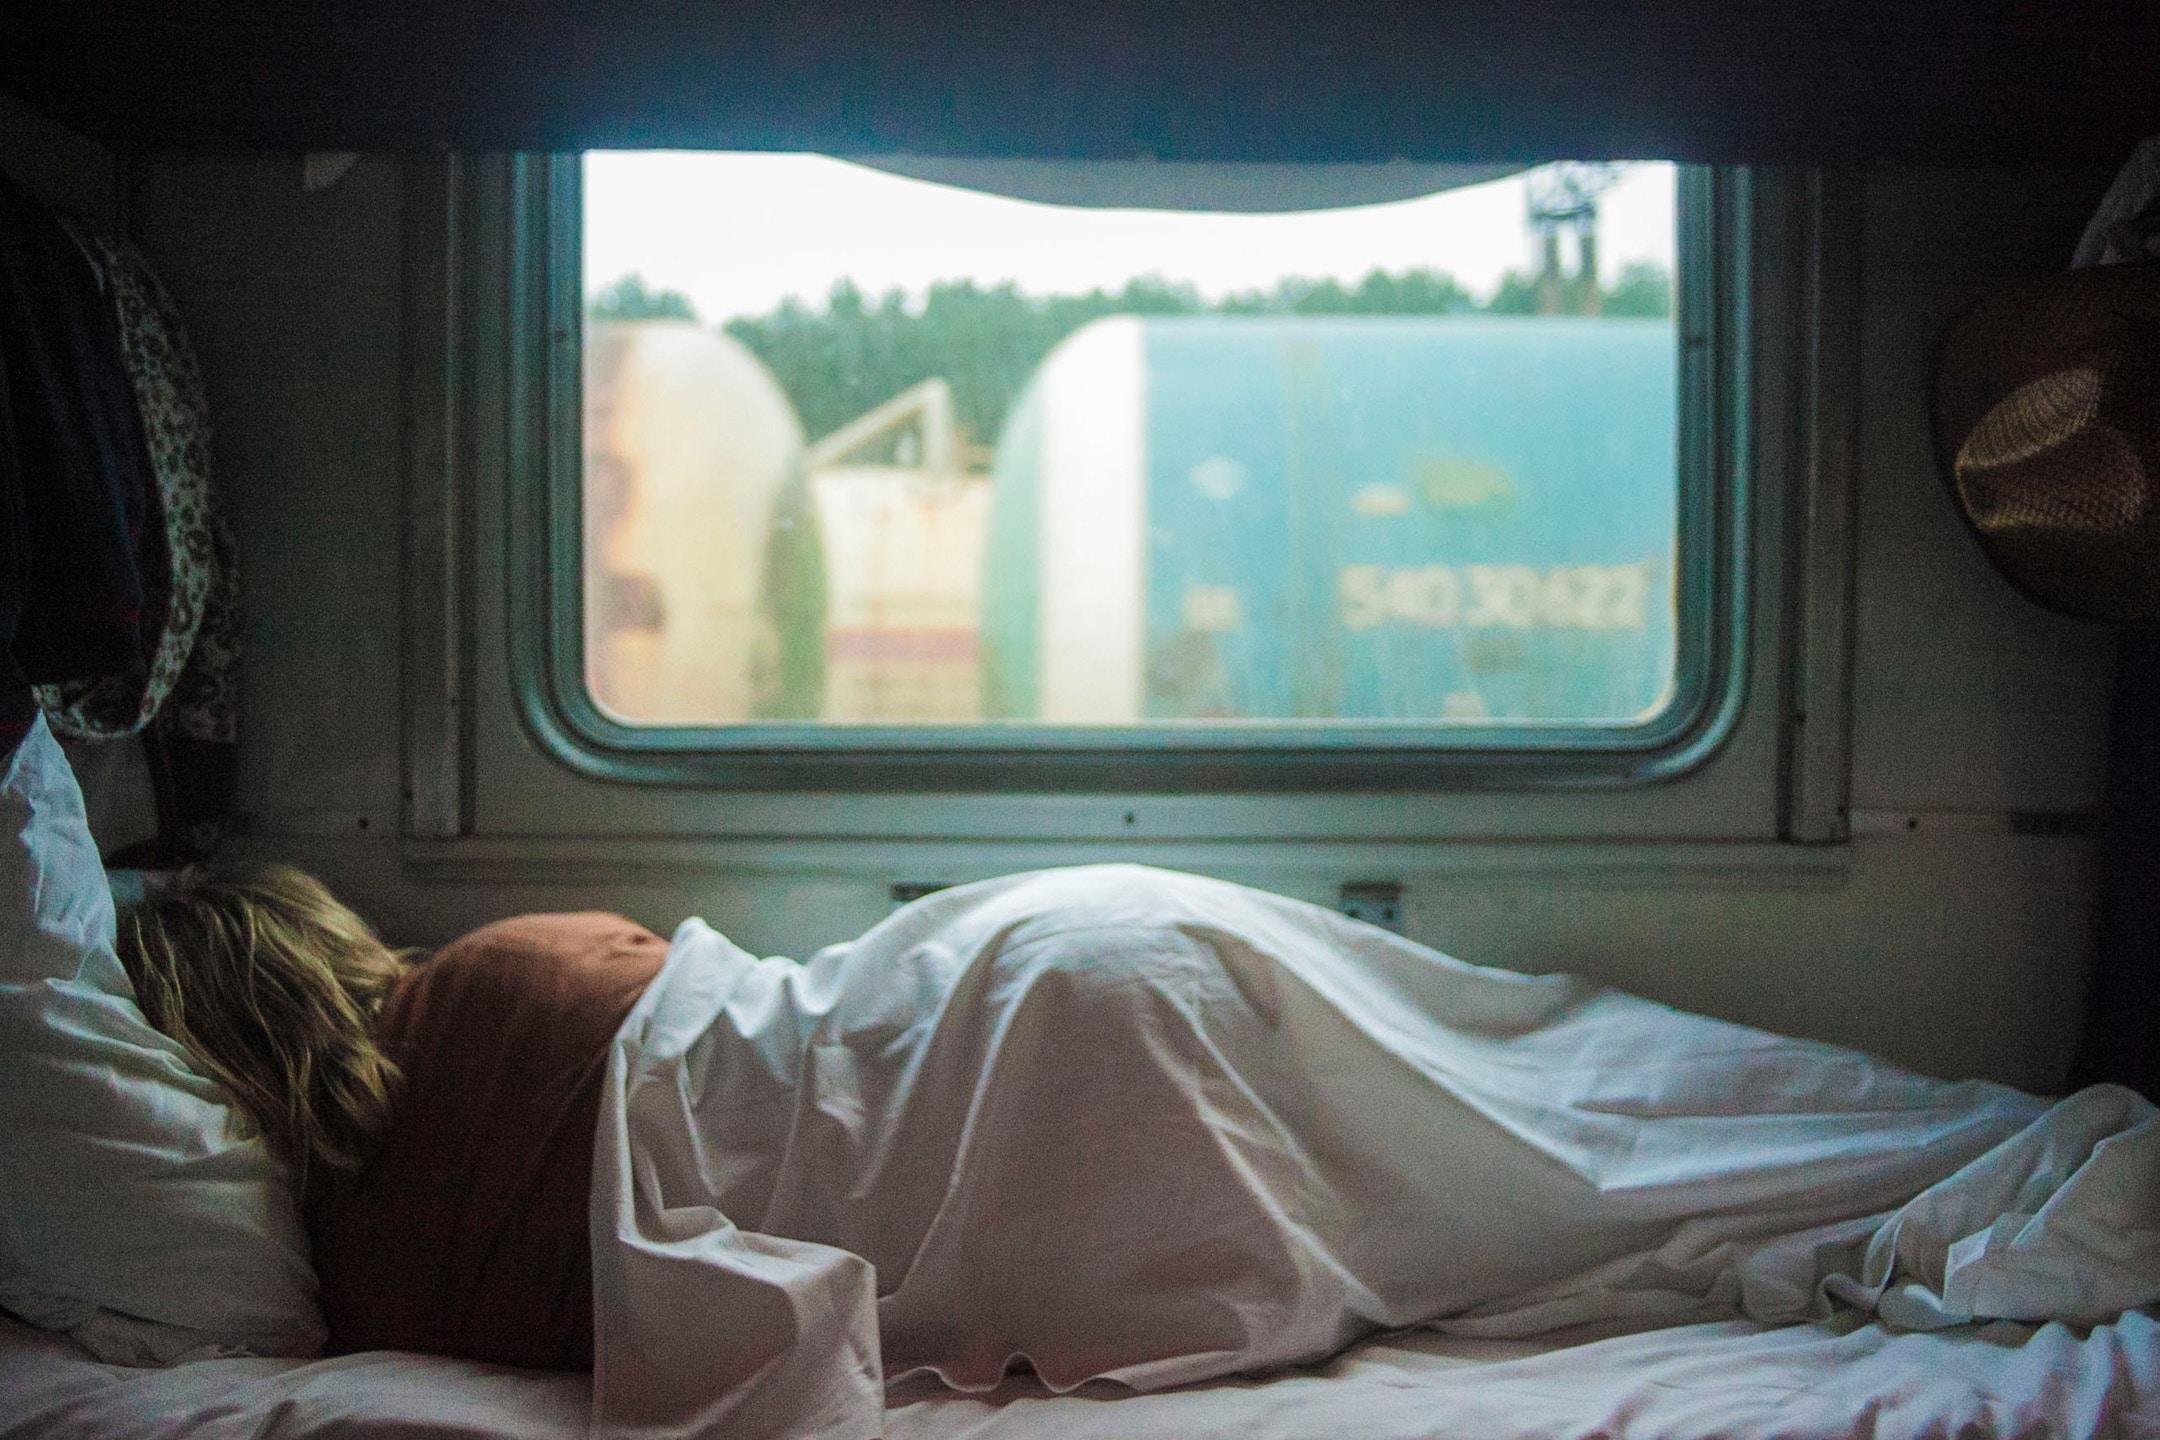 HOW TO DEAL WITH A SNORING TRAVEL COMPANION